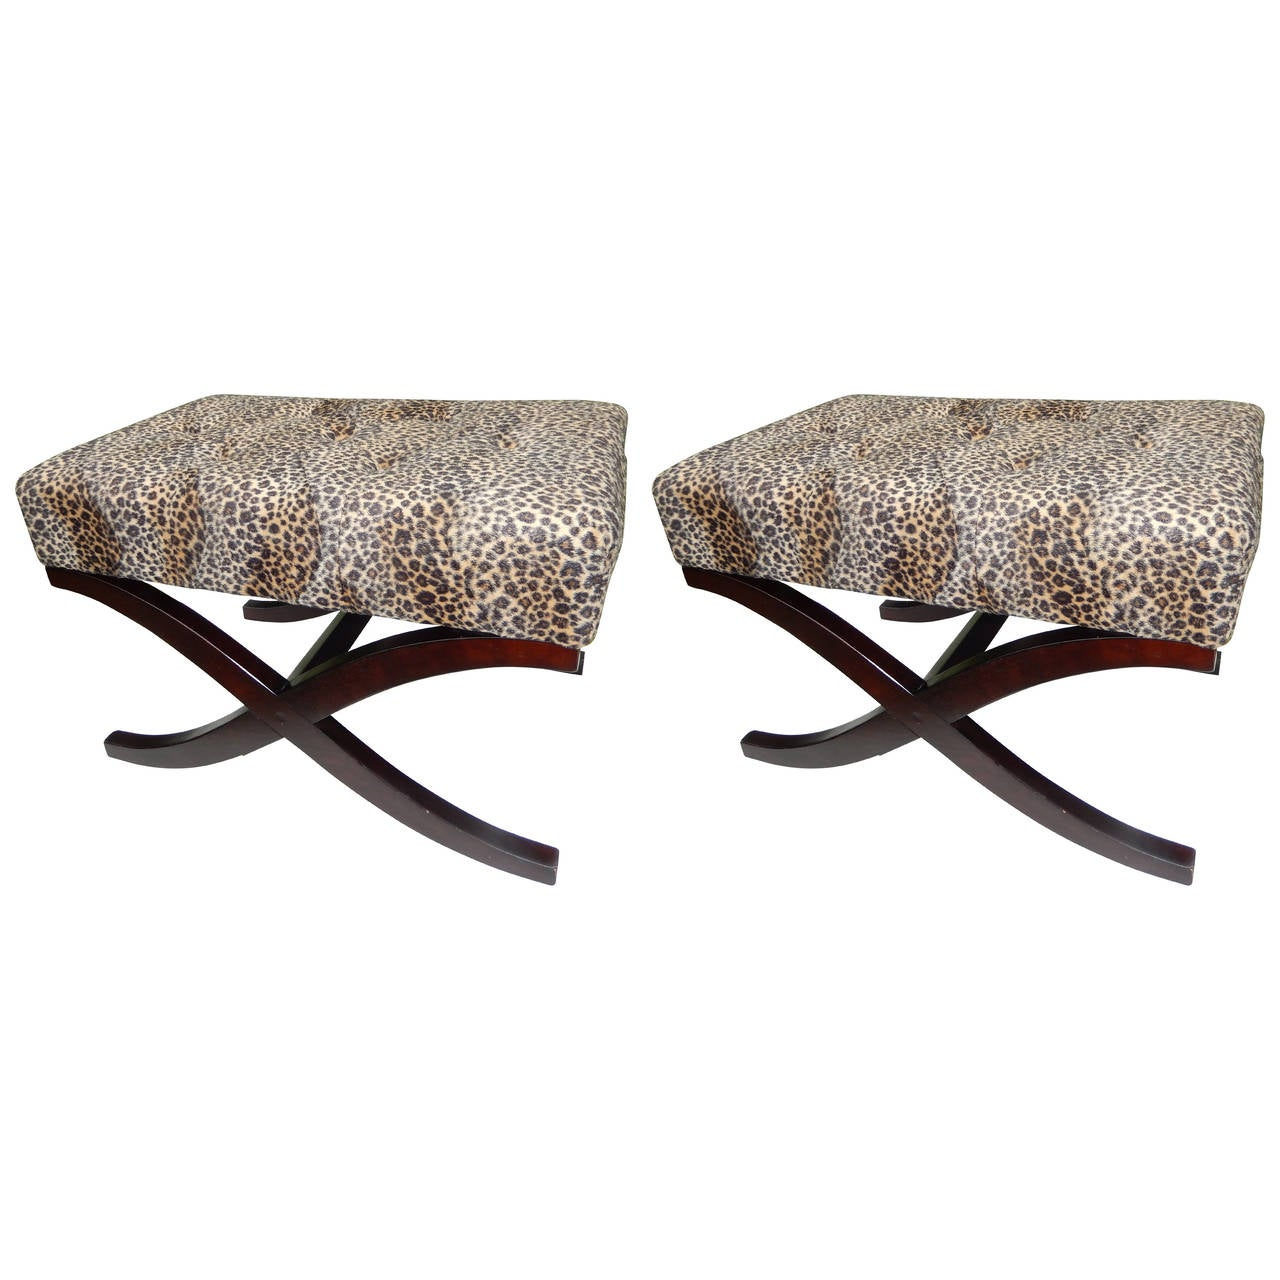 Pair of regency style leopard print benches at 1stdibs Leopard print bench